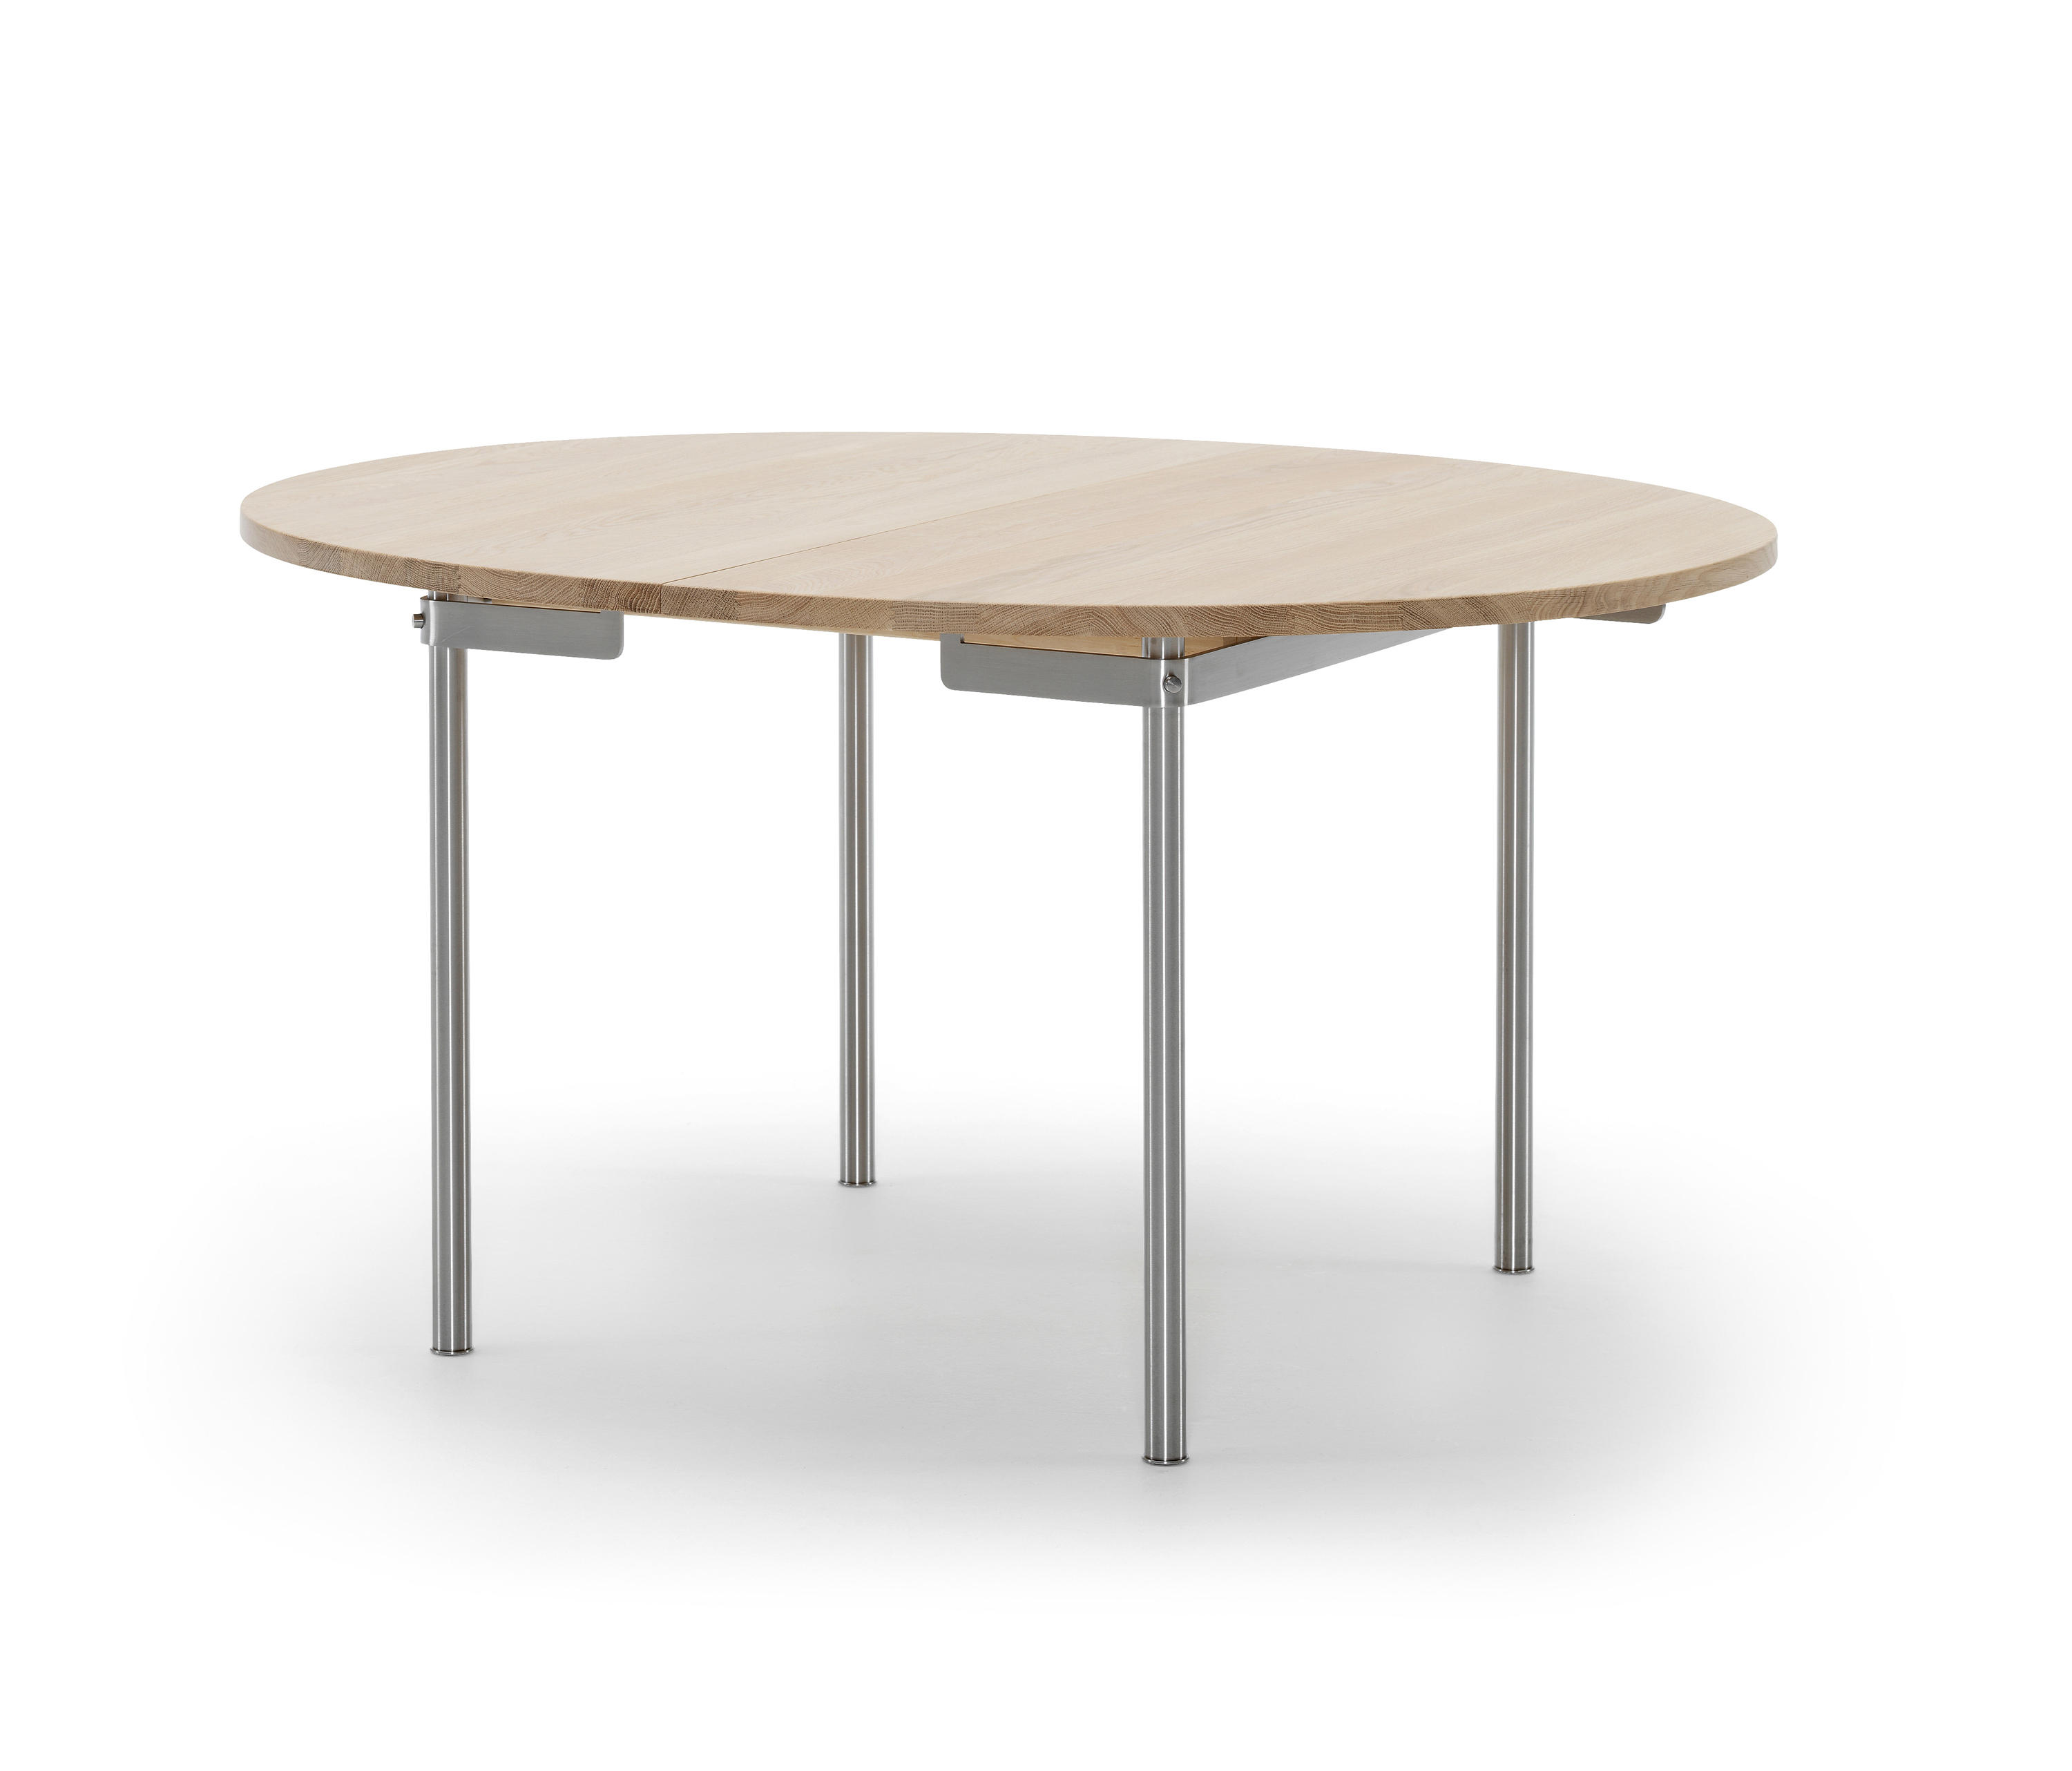 CH334 Multipurpose tables from Carl Hansen amp S248n  : ch334 os side b from www.architonic.com size 3000 x 2564 jpeg 224kB